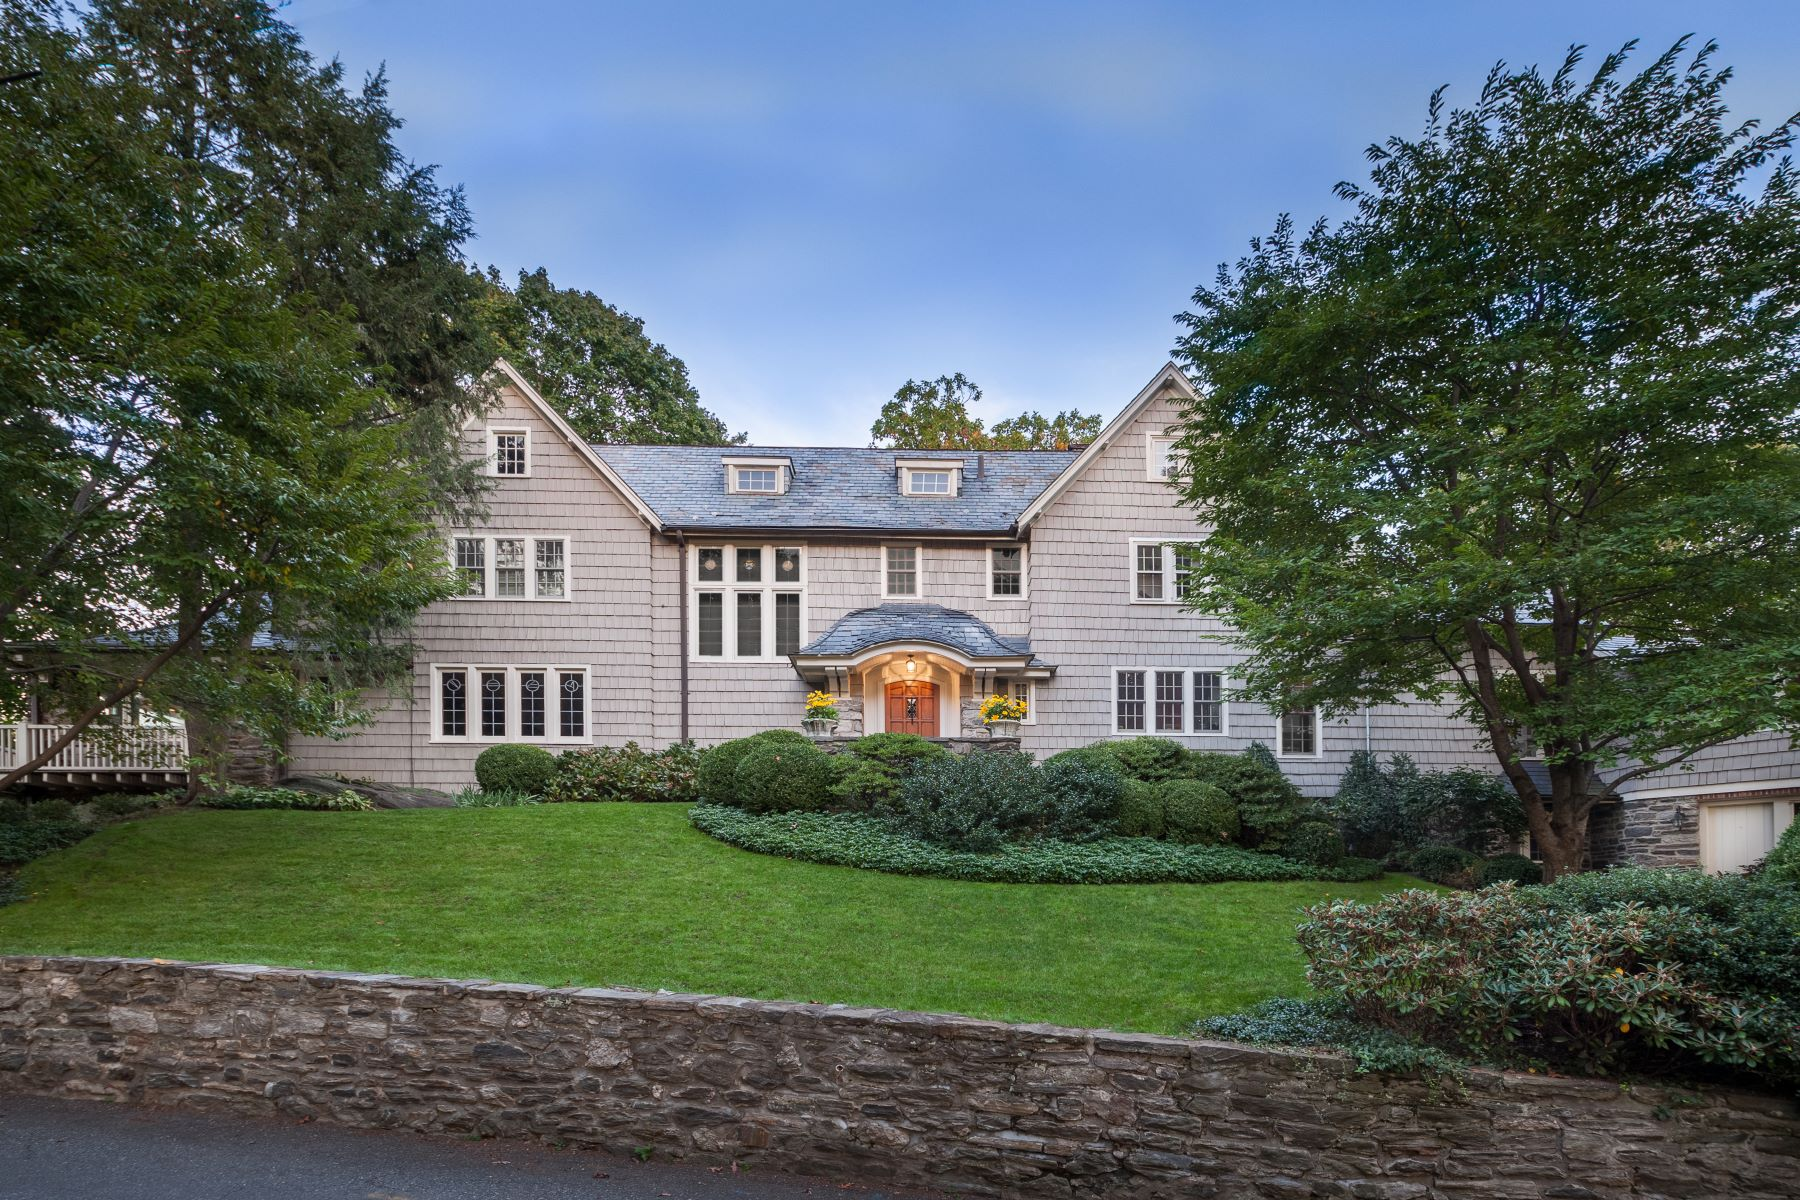 Single Family Home for Sale at The Quintessential Hilltop House 6 Northern Avenue Bronxville, New York 10708 United States